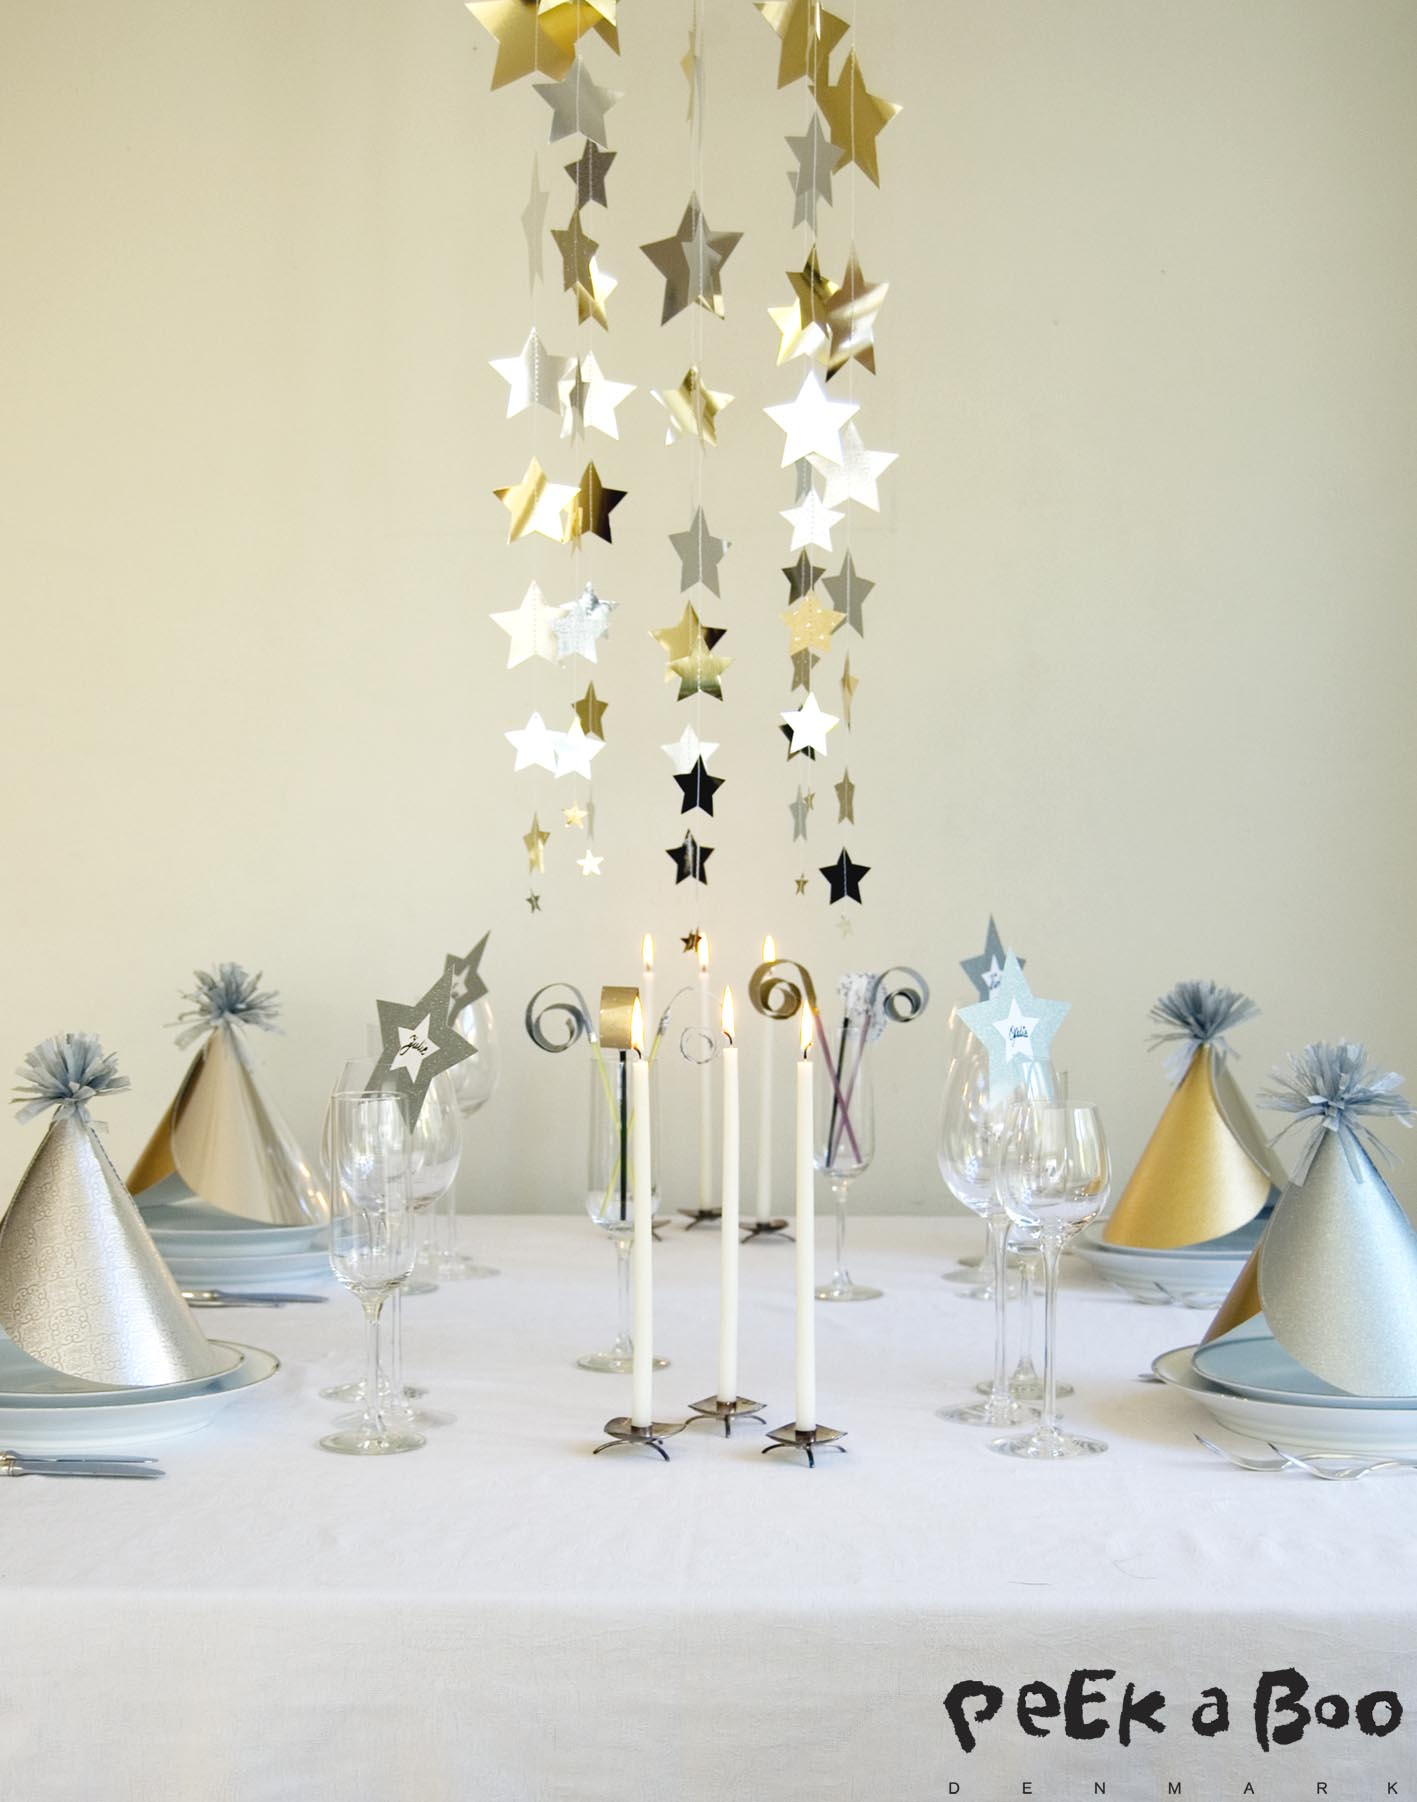 DIY starry sky as centerpiece for your New Years eve tablesetting.